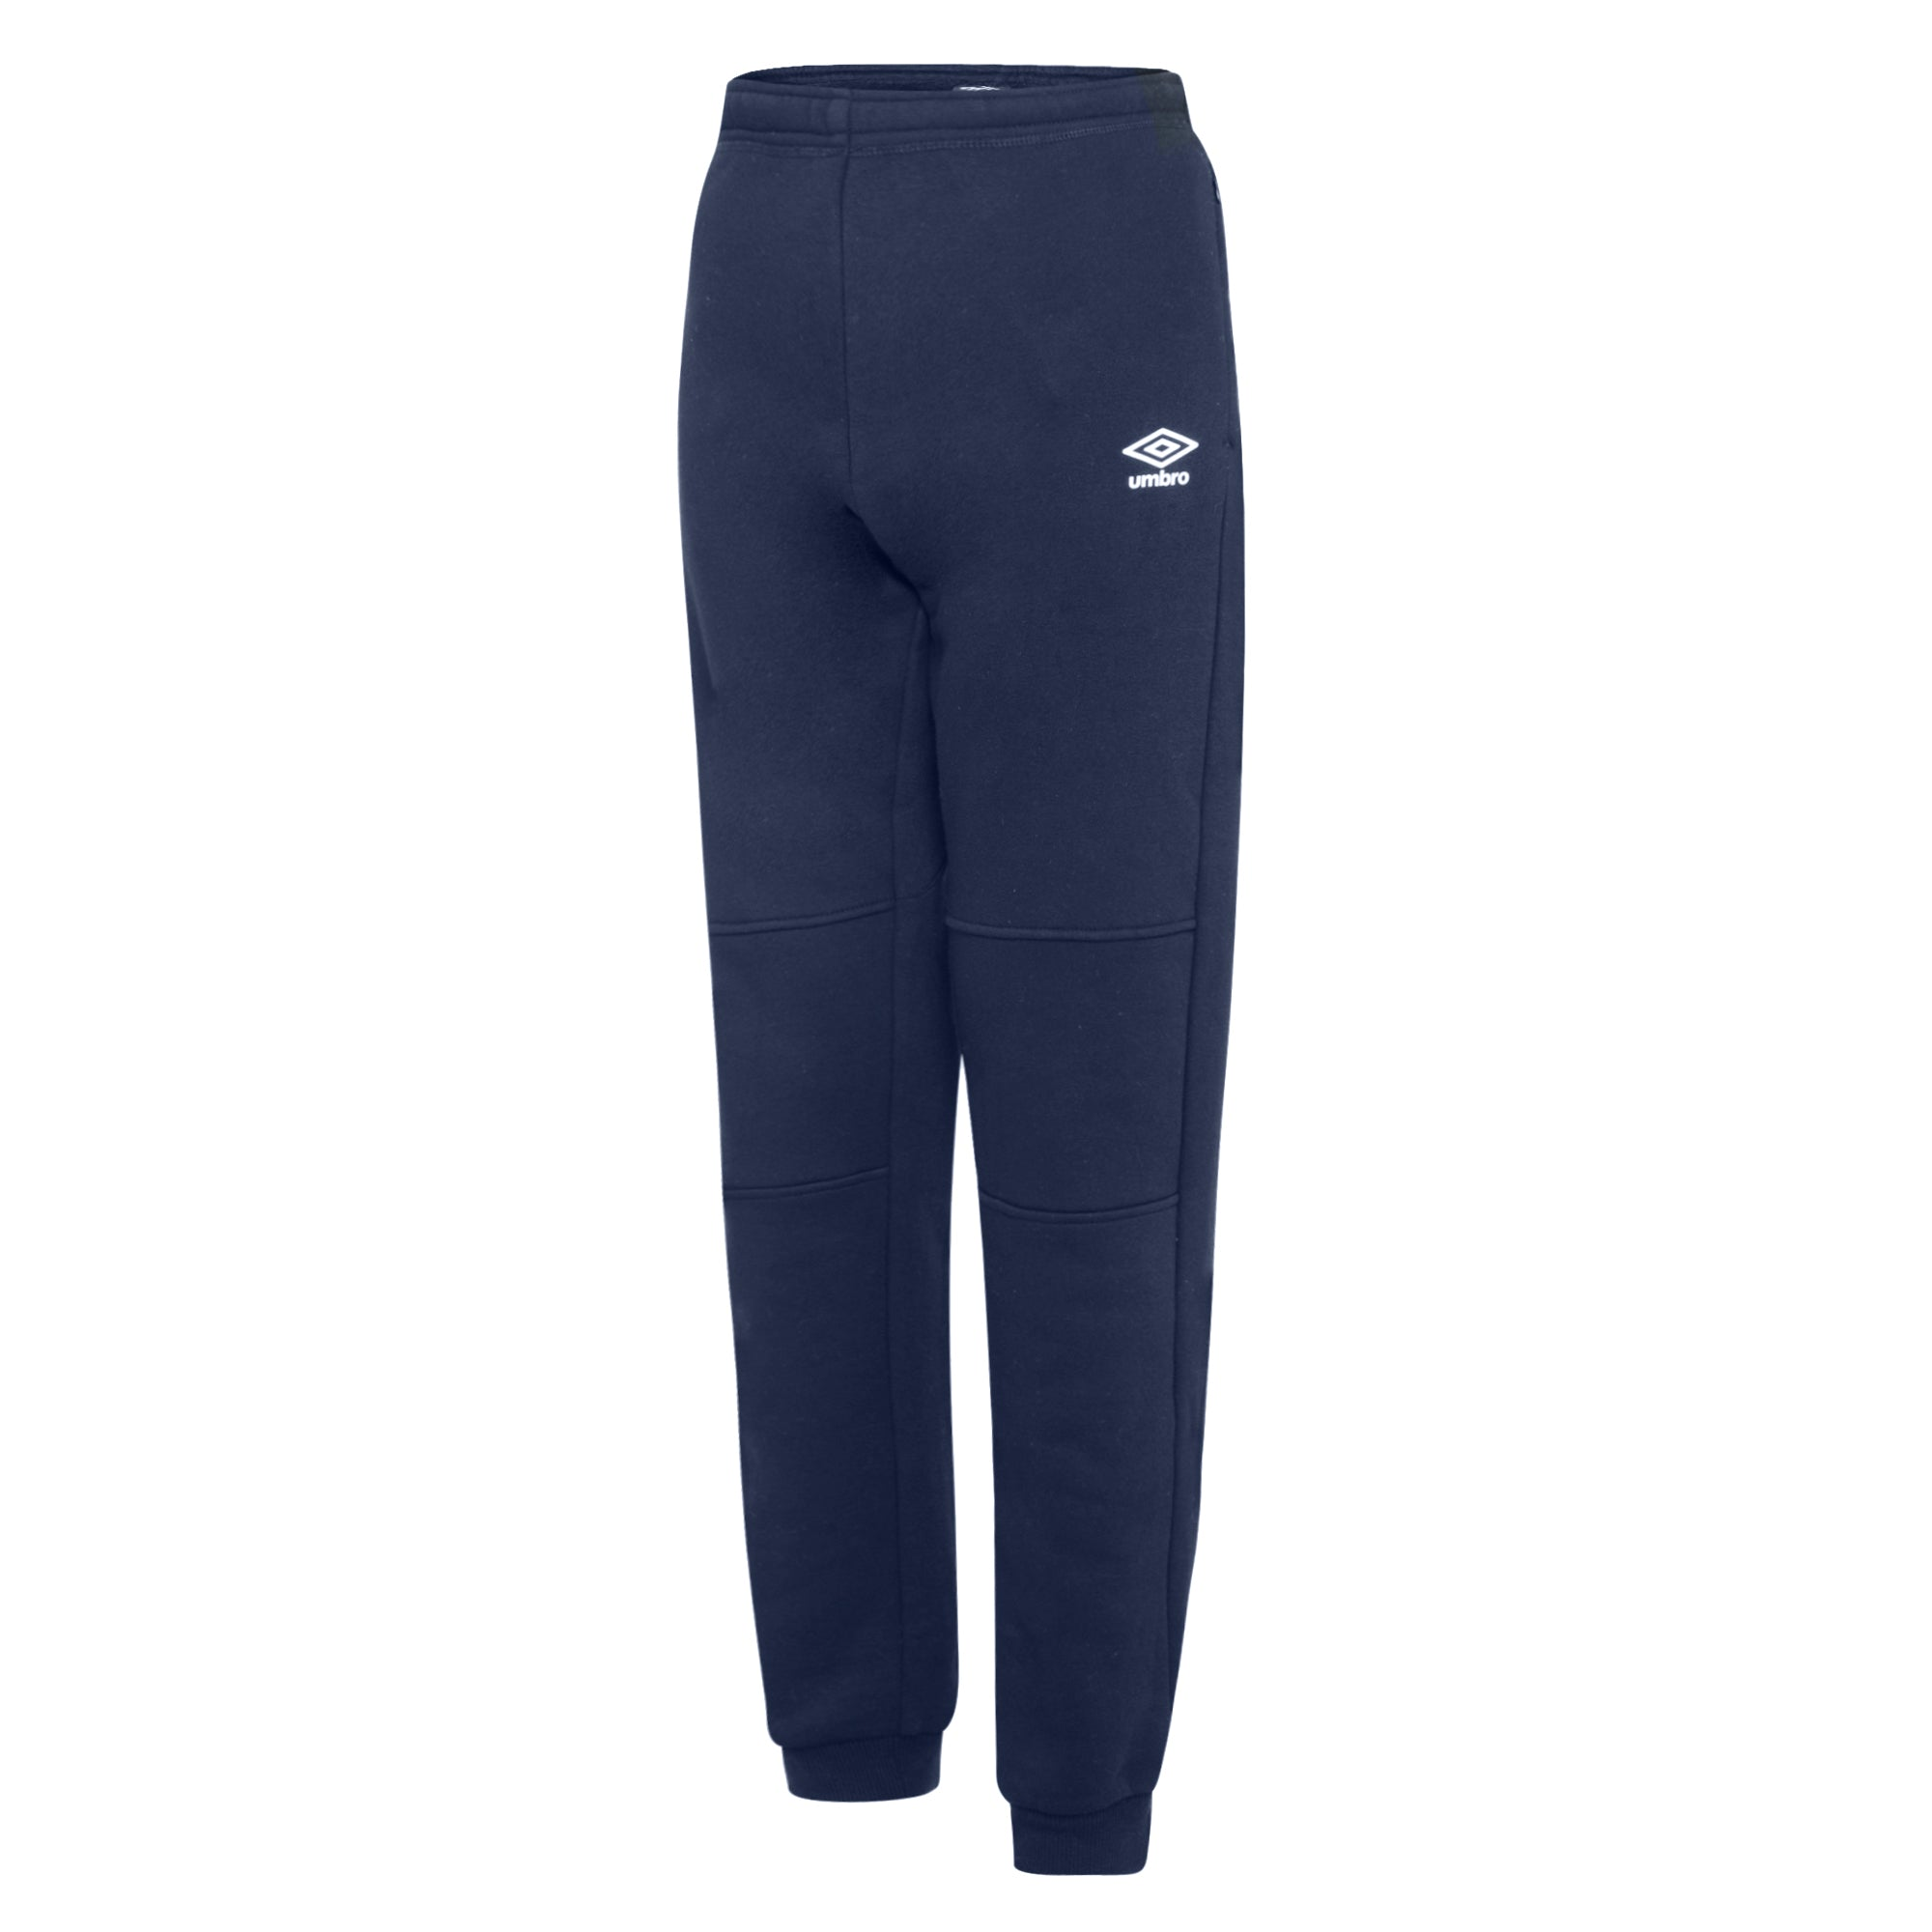 Umbro Club Leisure Women's Jogpants - TW Navy/White